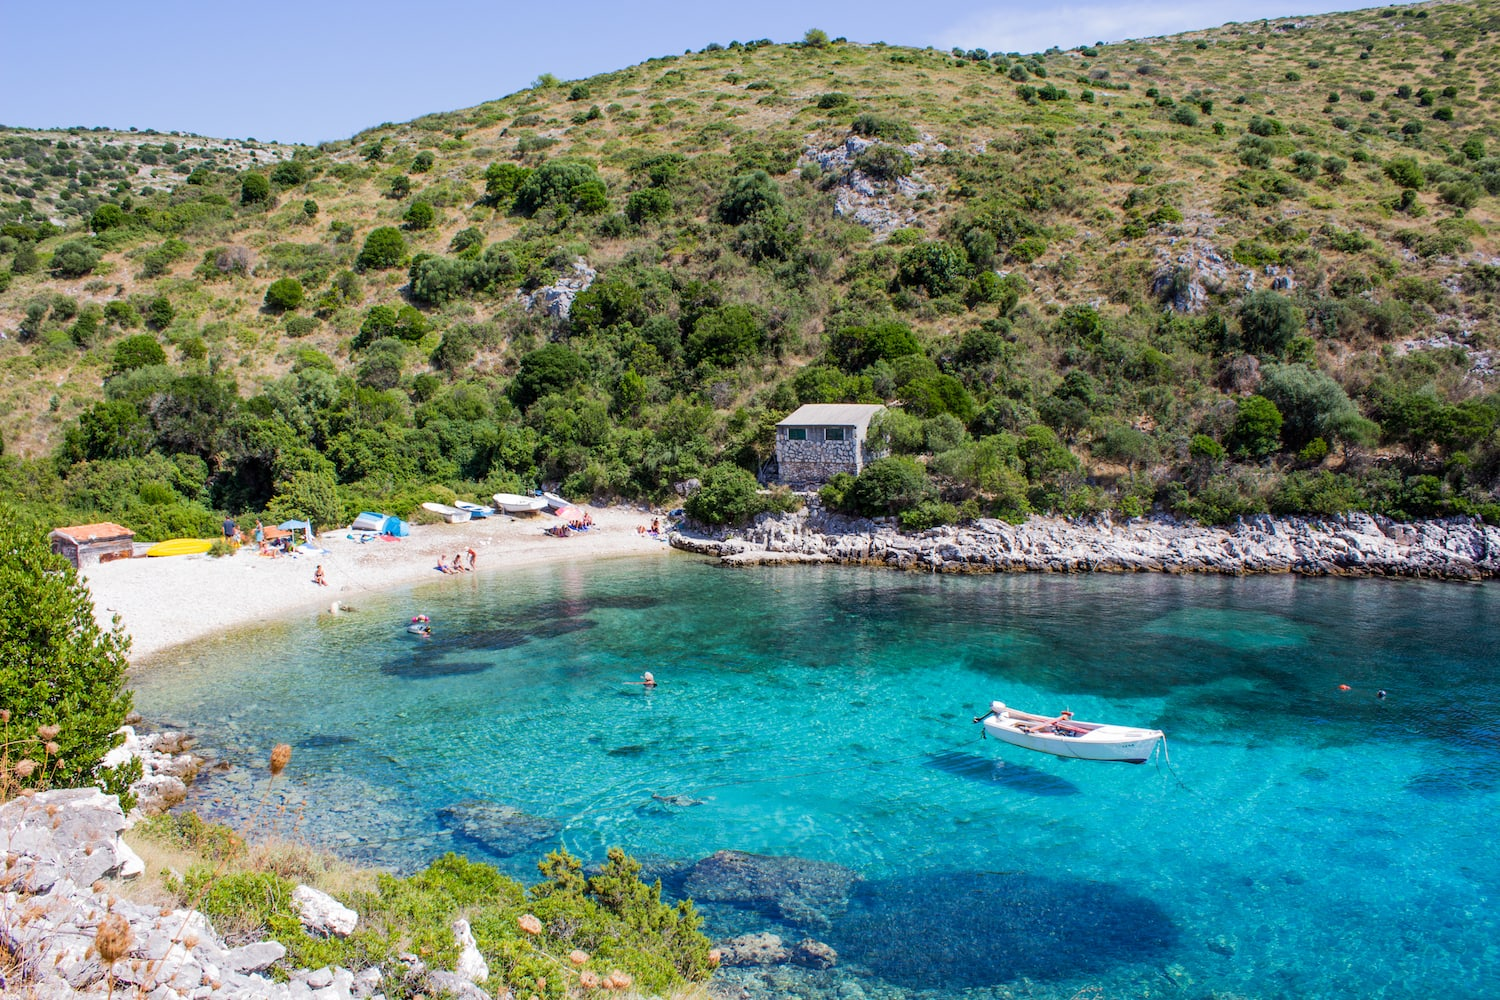 Paradise beach with crystal clear water in Dugi Otok, Kornati Islands.